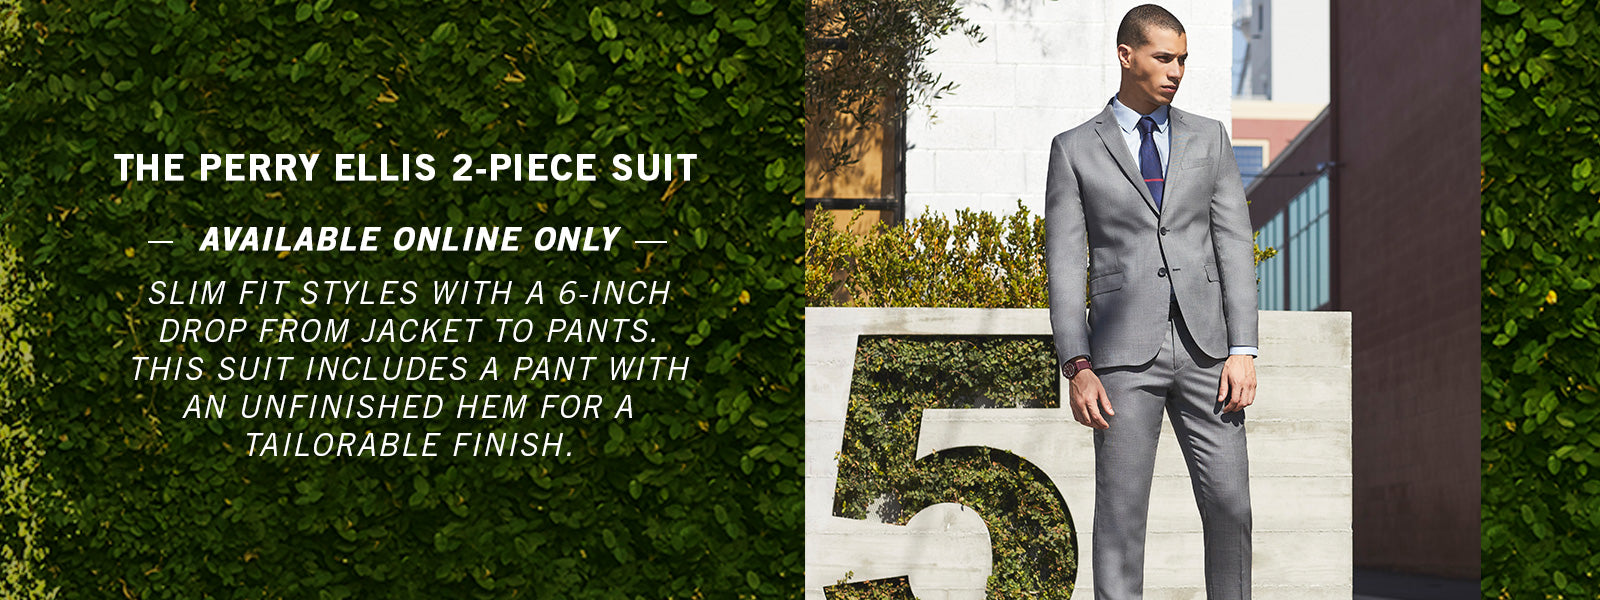 Perry Ellis 2 Piece Suit - SHOP NOW